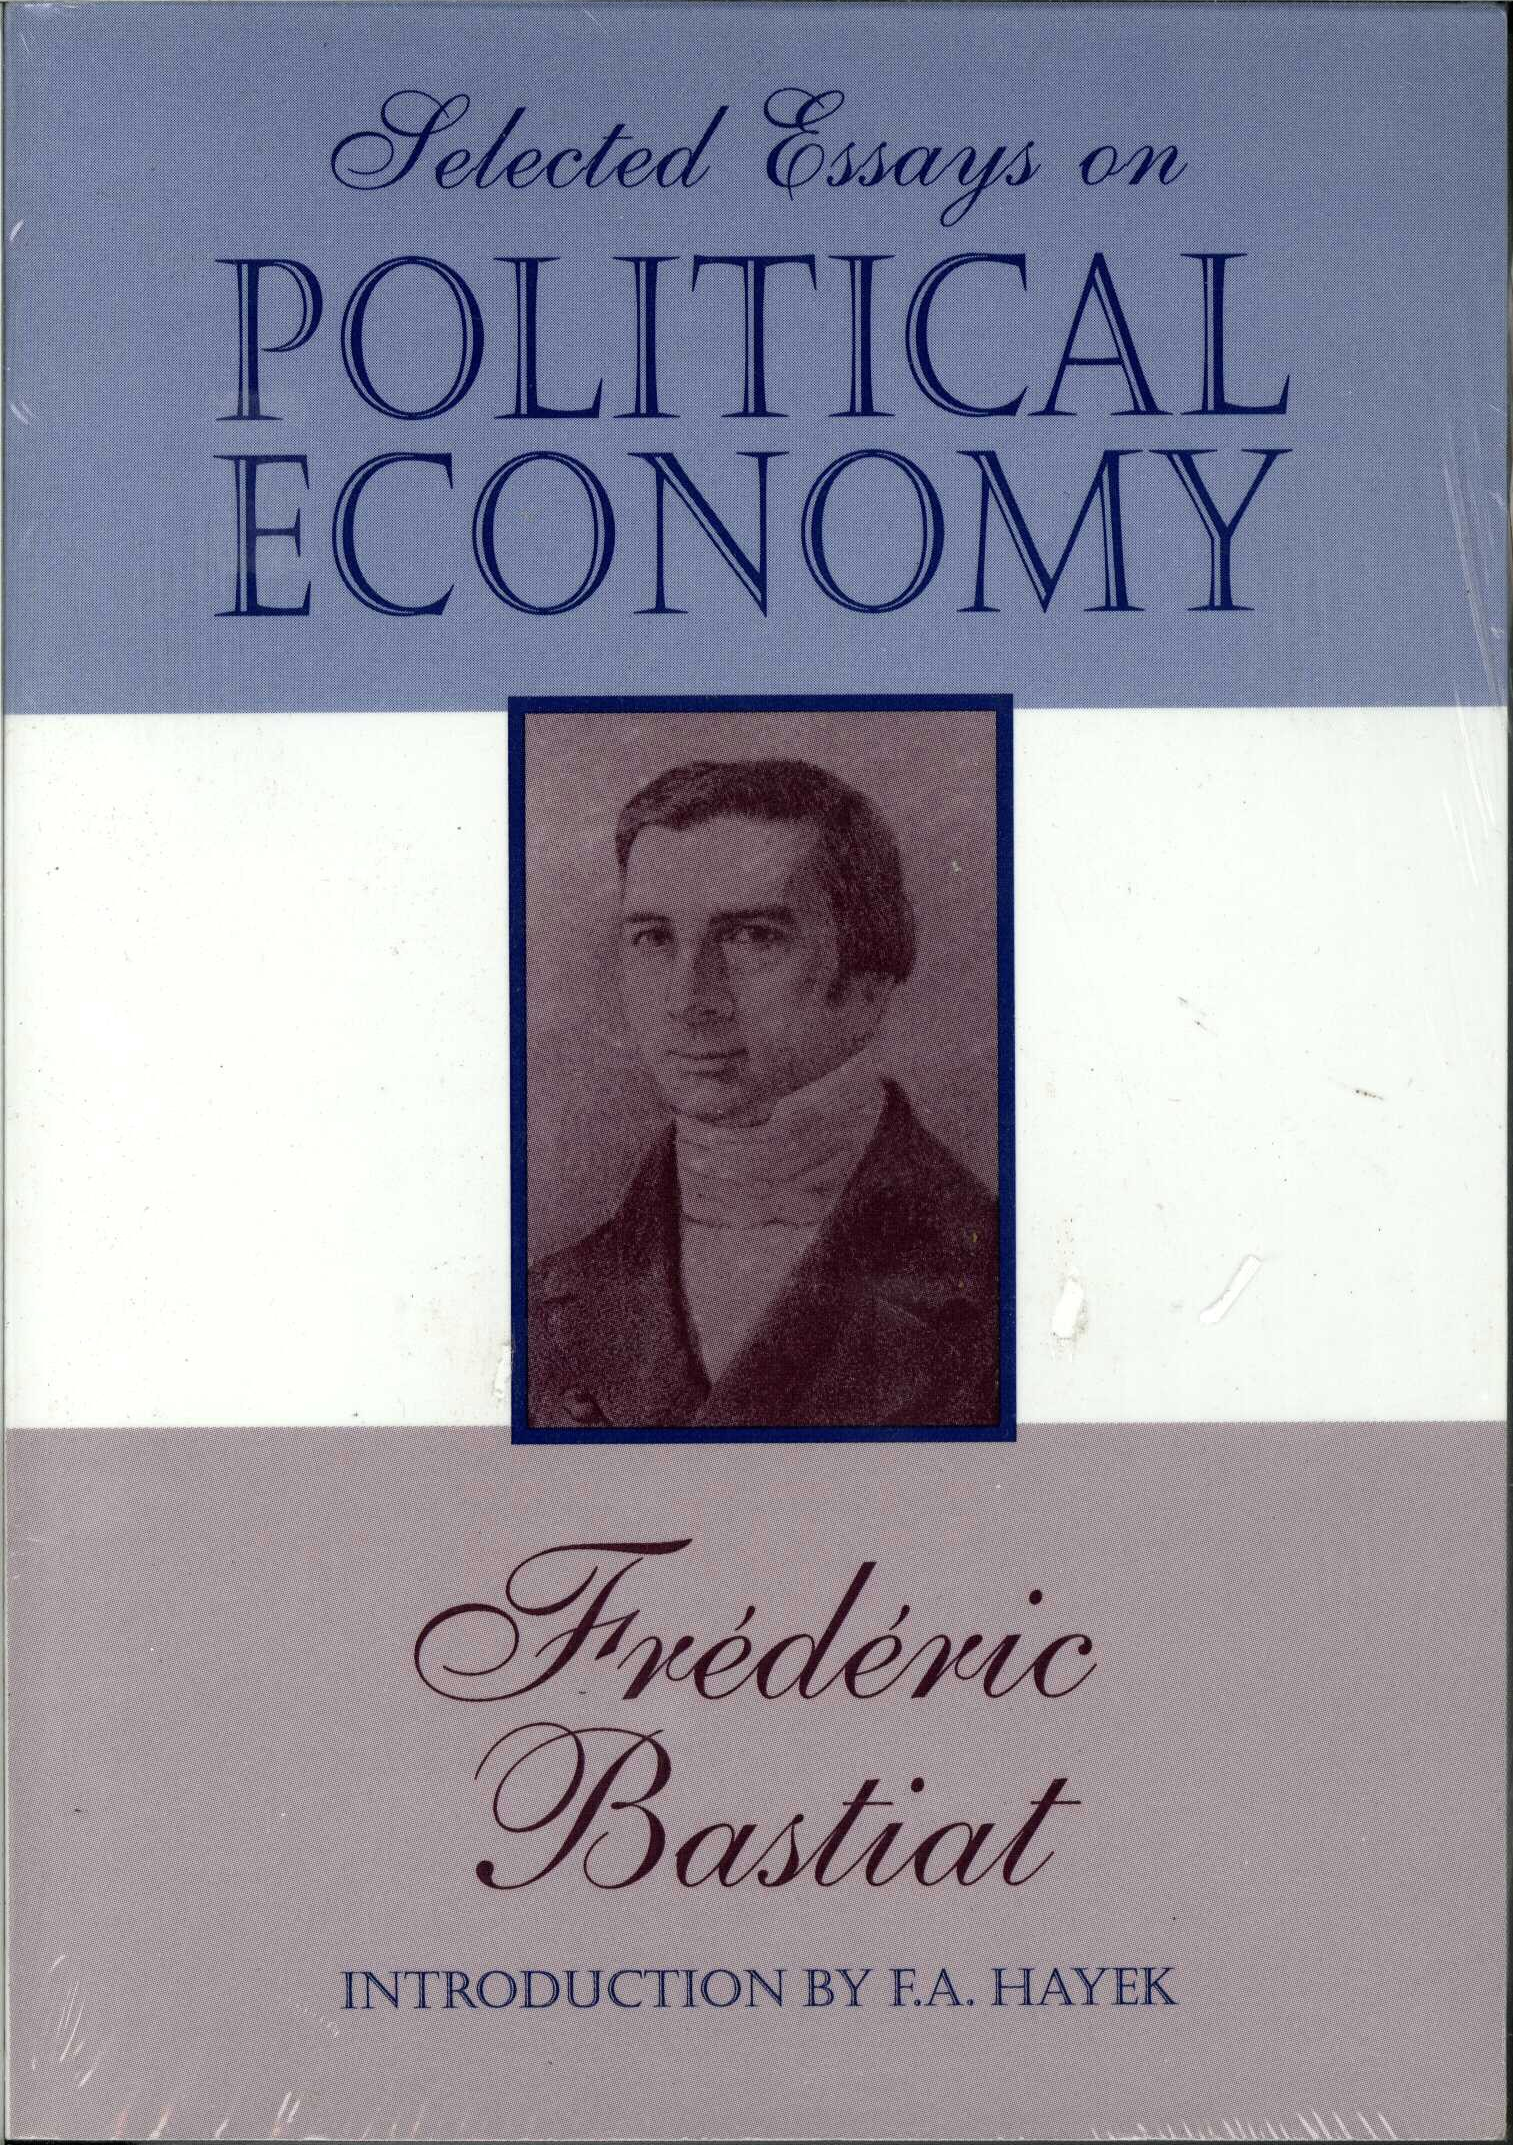 "economy essay in political selected The nature of political economy"" 931 words 